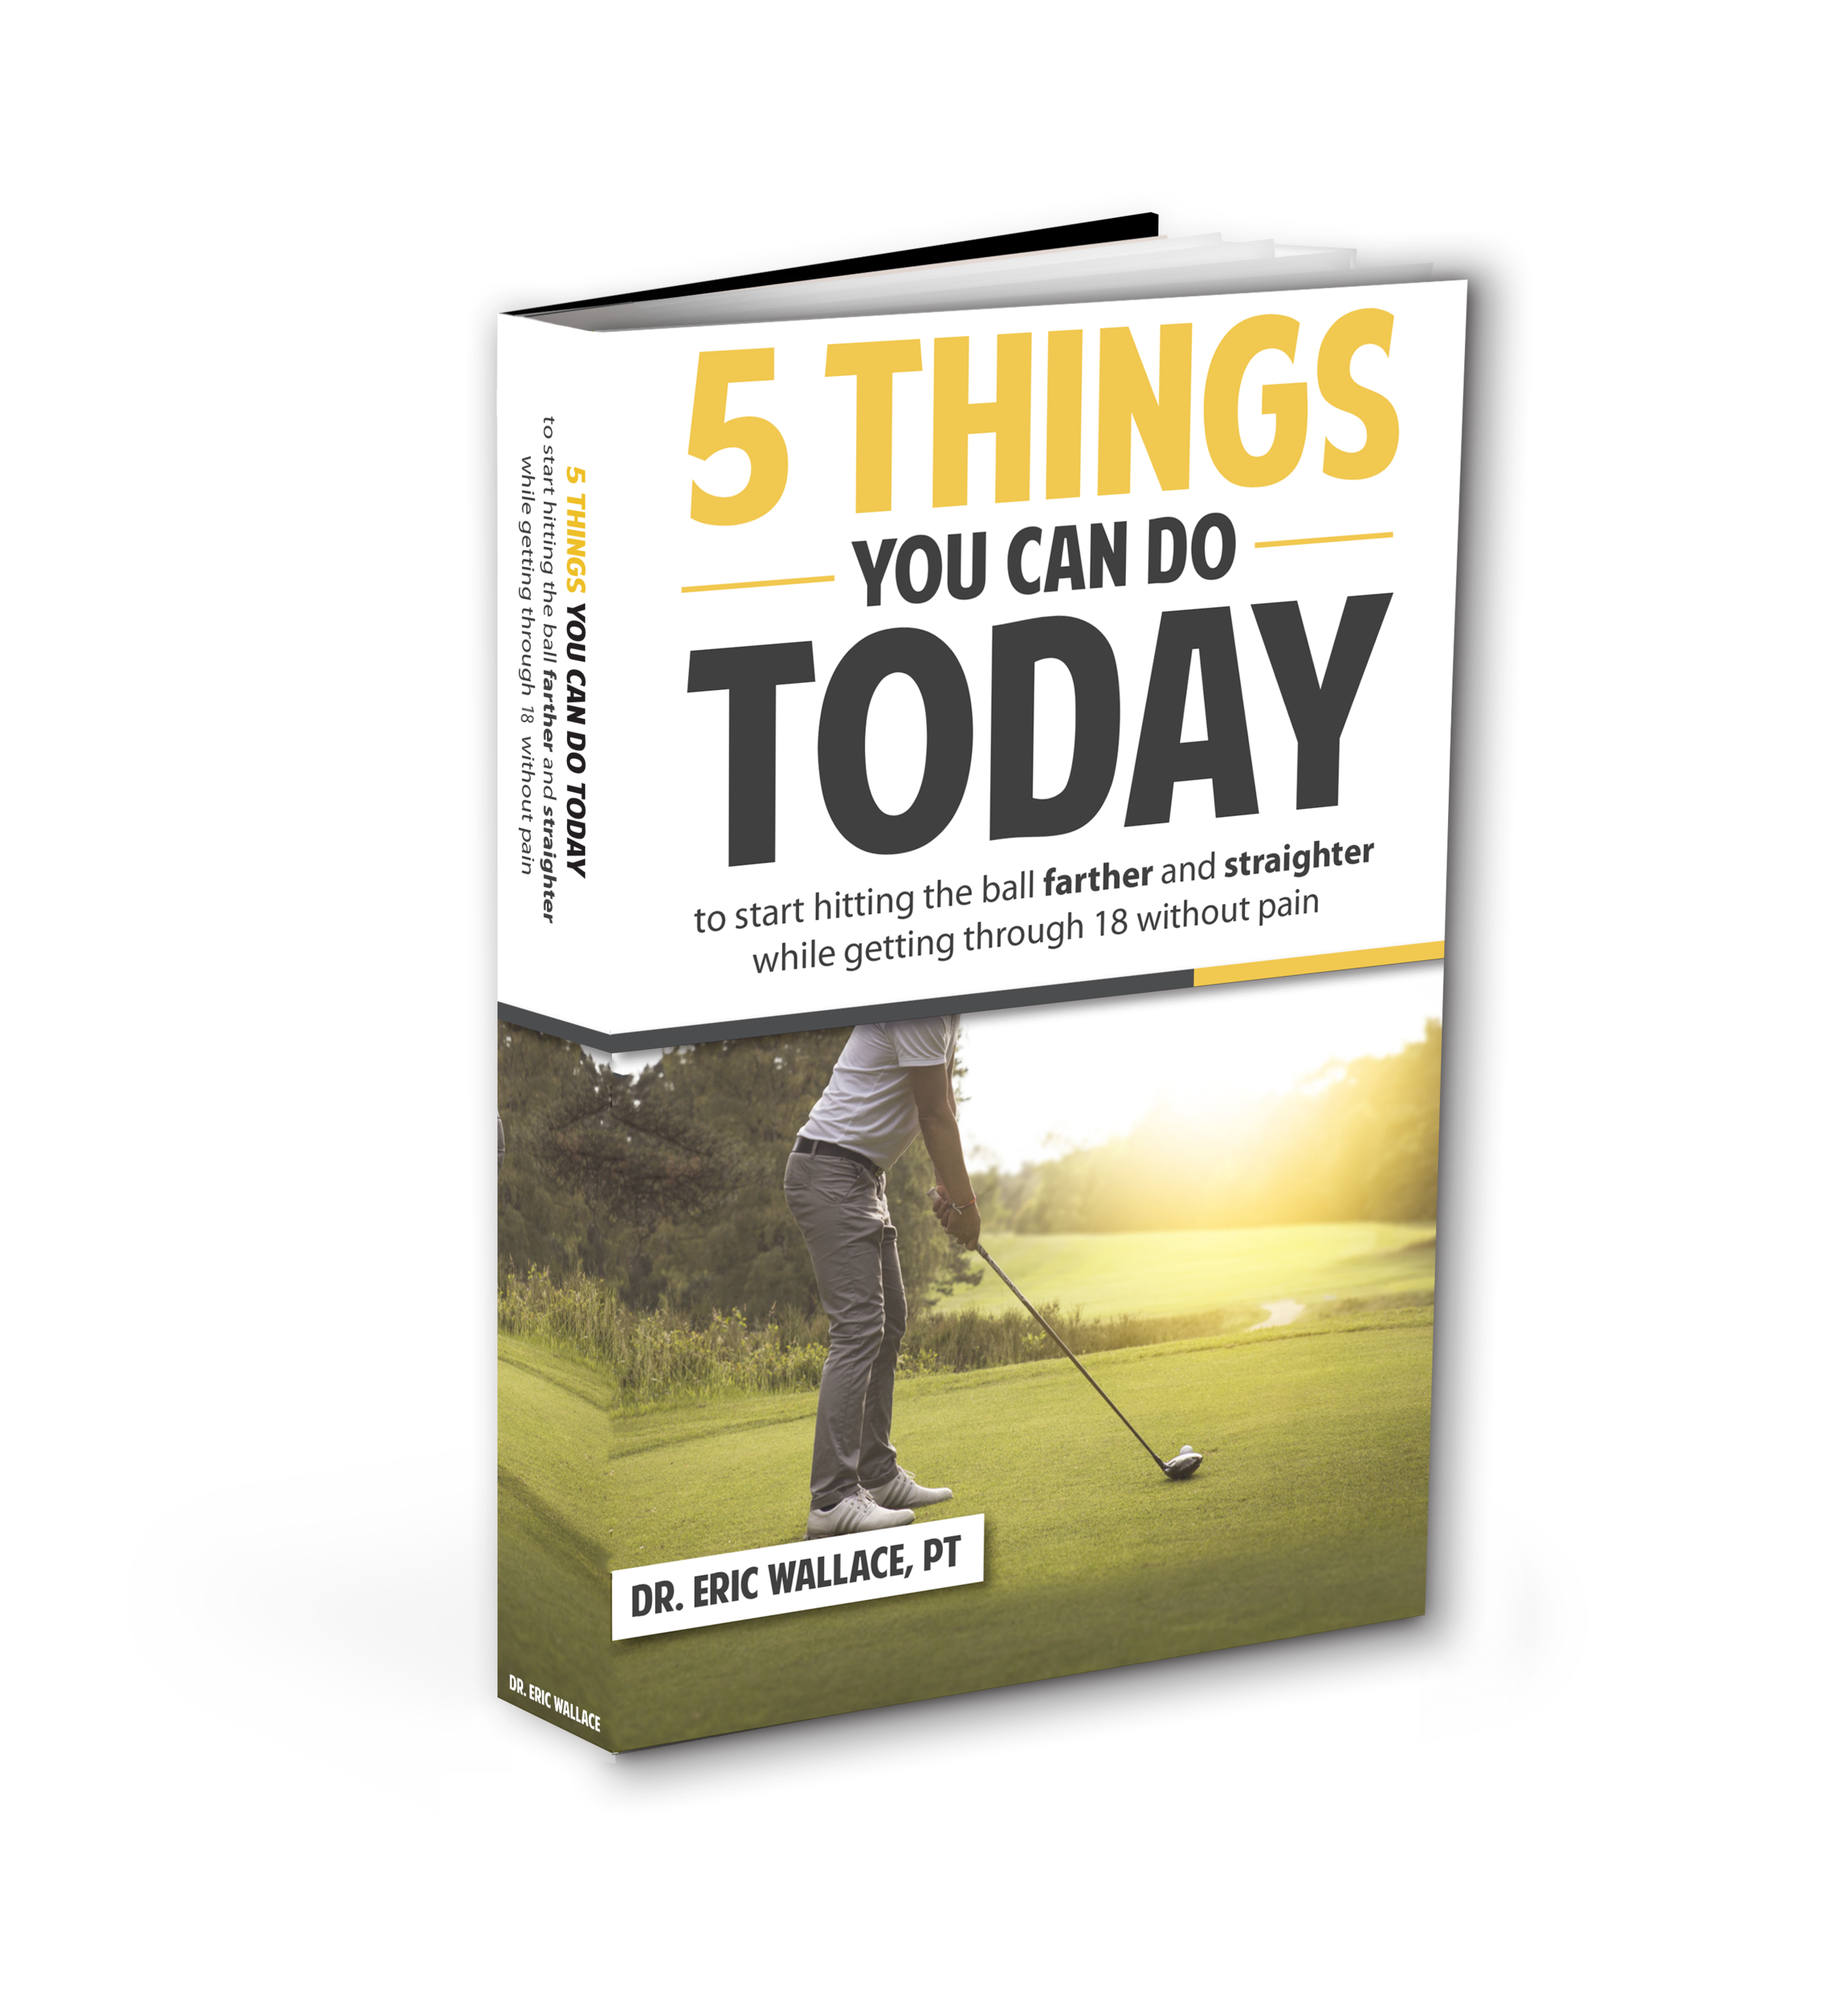 CLICK ON THE IMAGE TO DOWNLOAD YOUR FREE E-BOOK AND START IMPROVING YOUR                                   GAME TODAY!